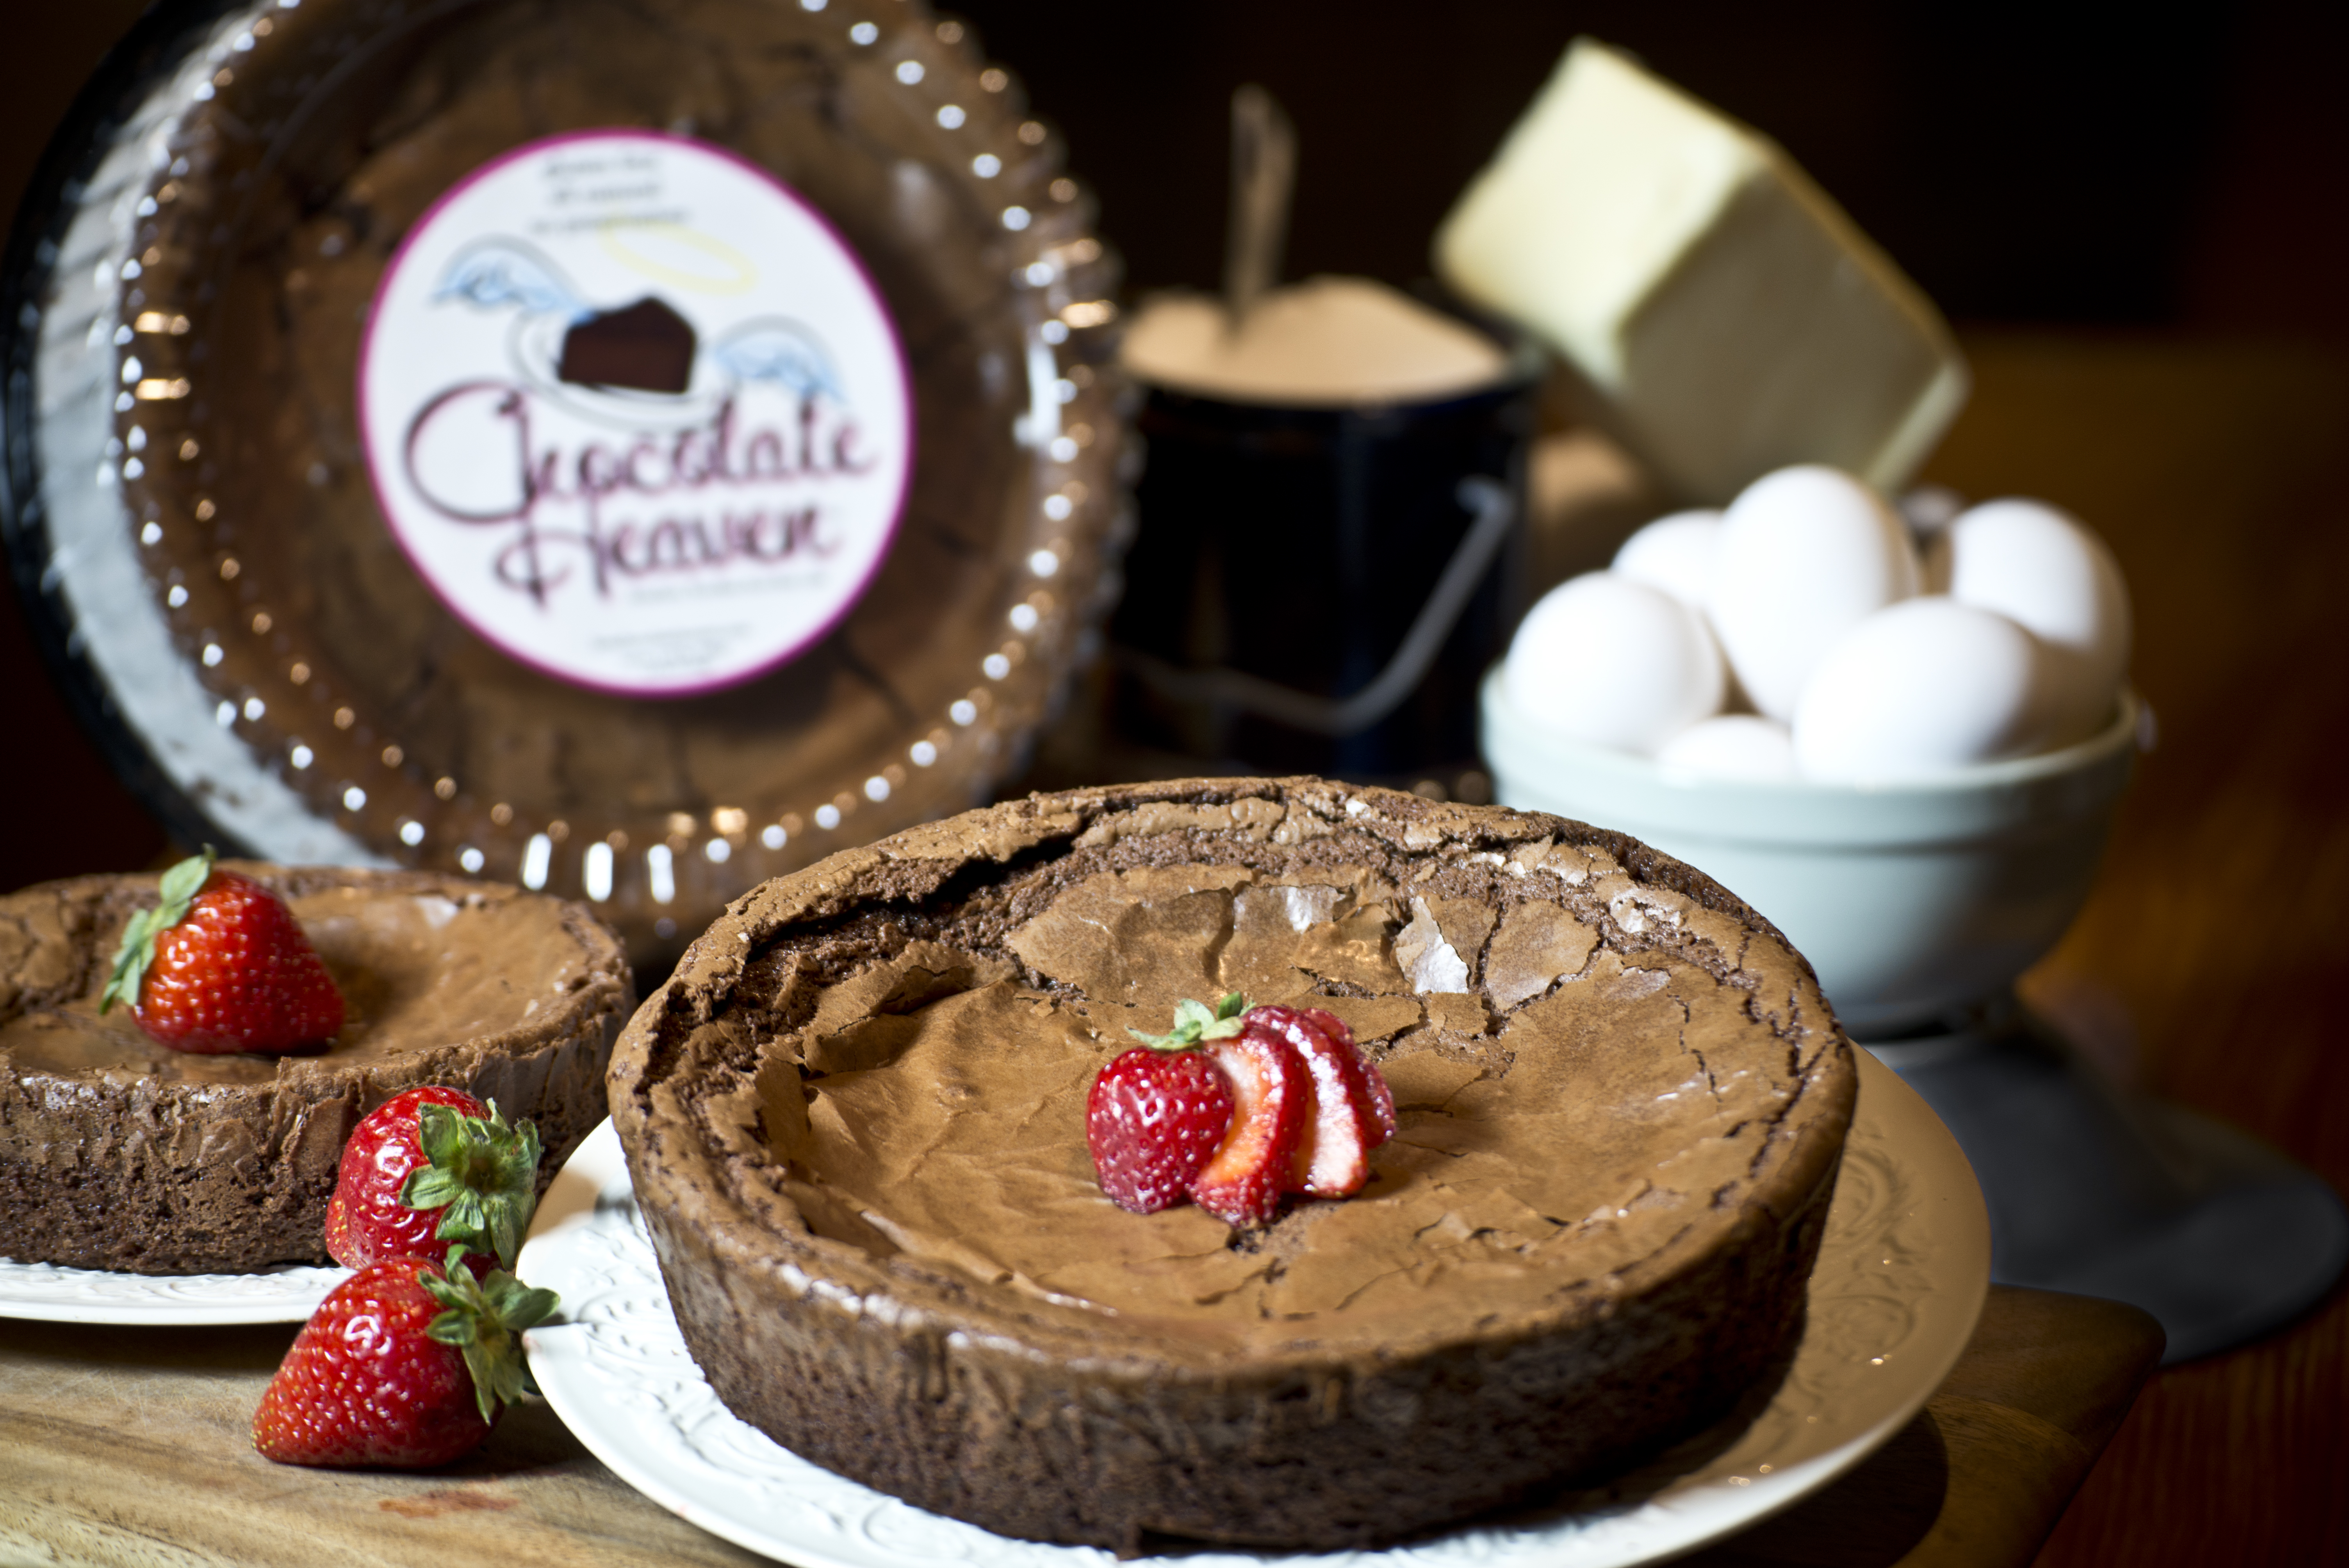 chocolate_heaven7 copy